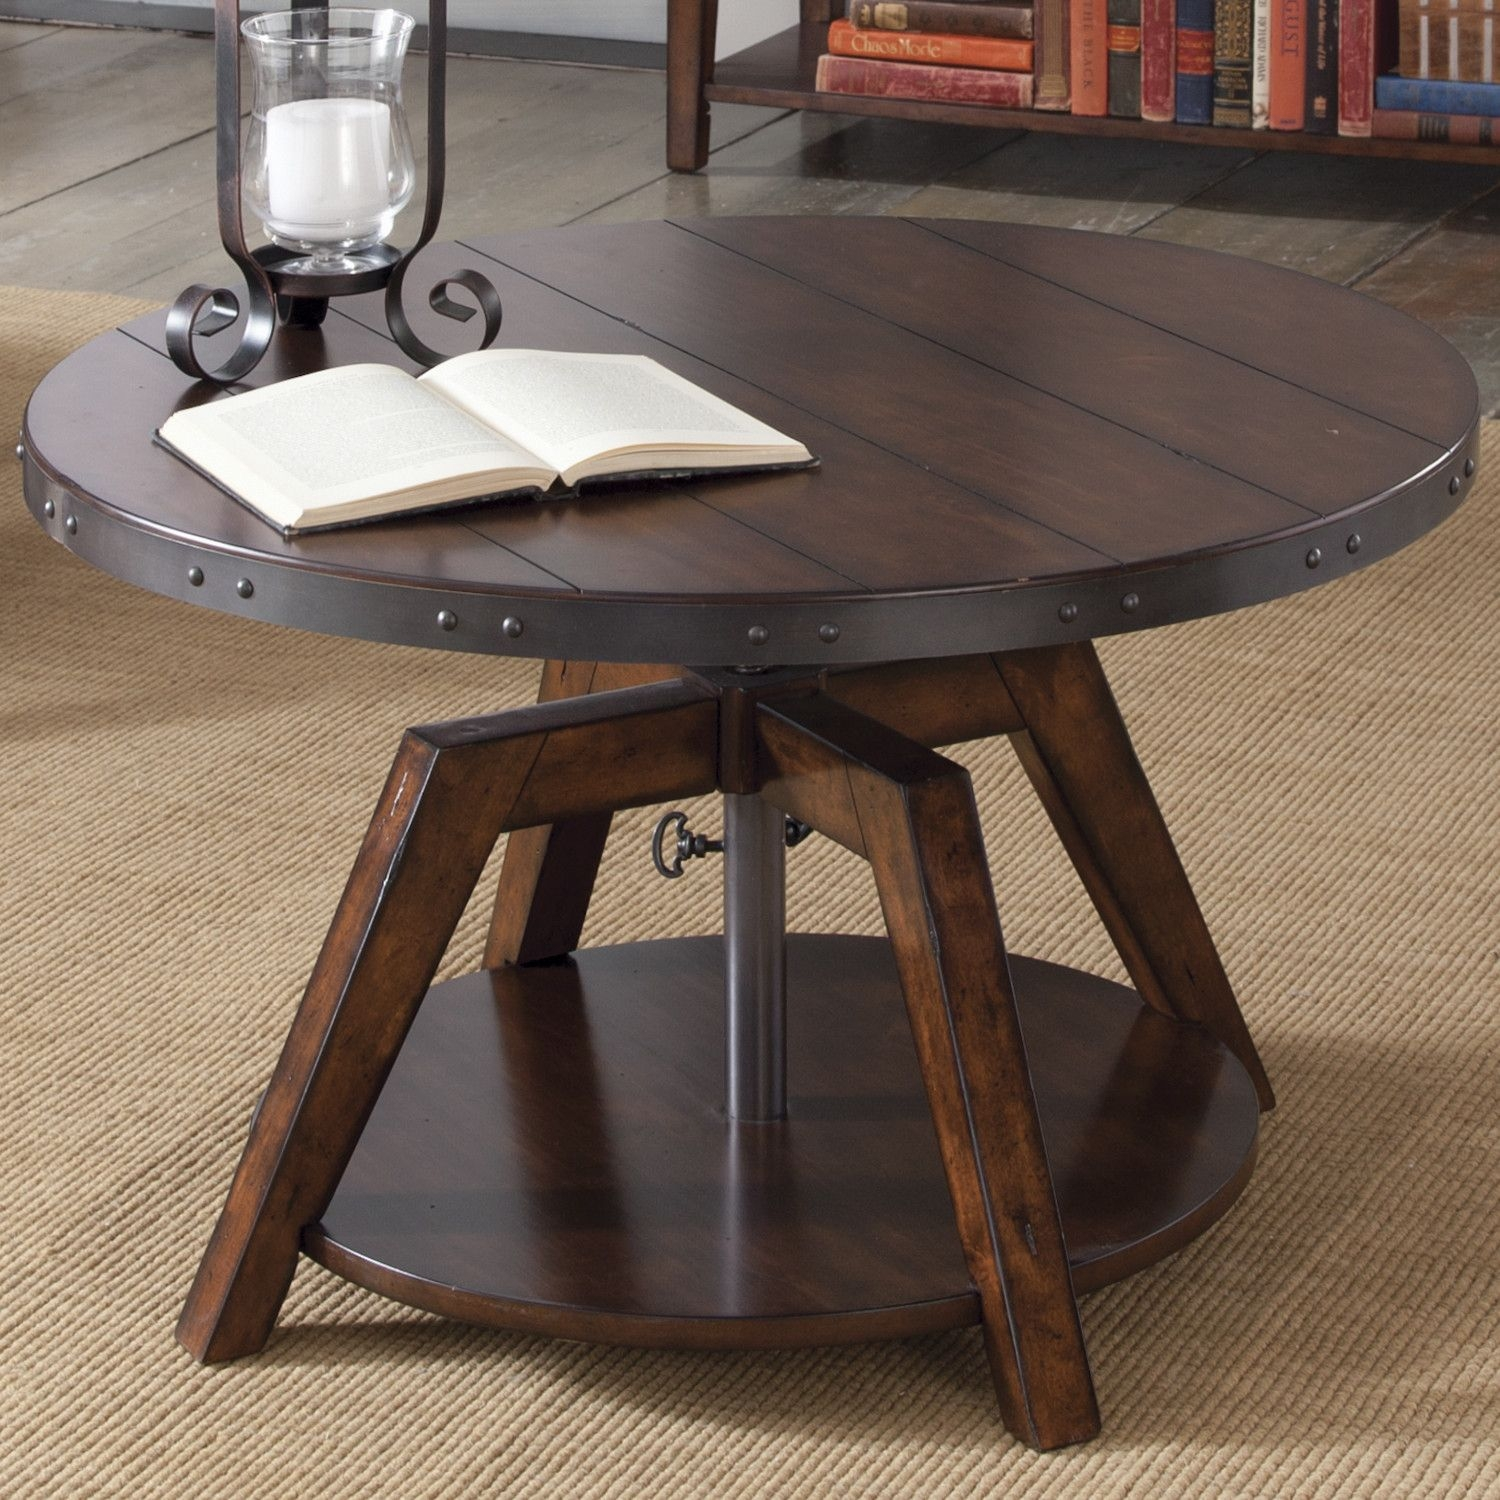 Coffee Table That Becomes Dining Table 50 43 Amazing Convertible Coffee Table To Dining Table Up